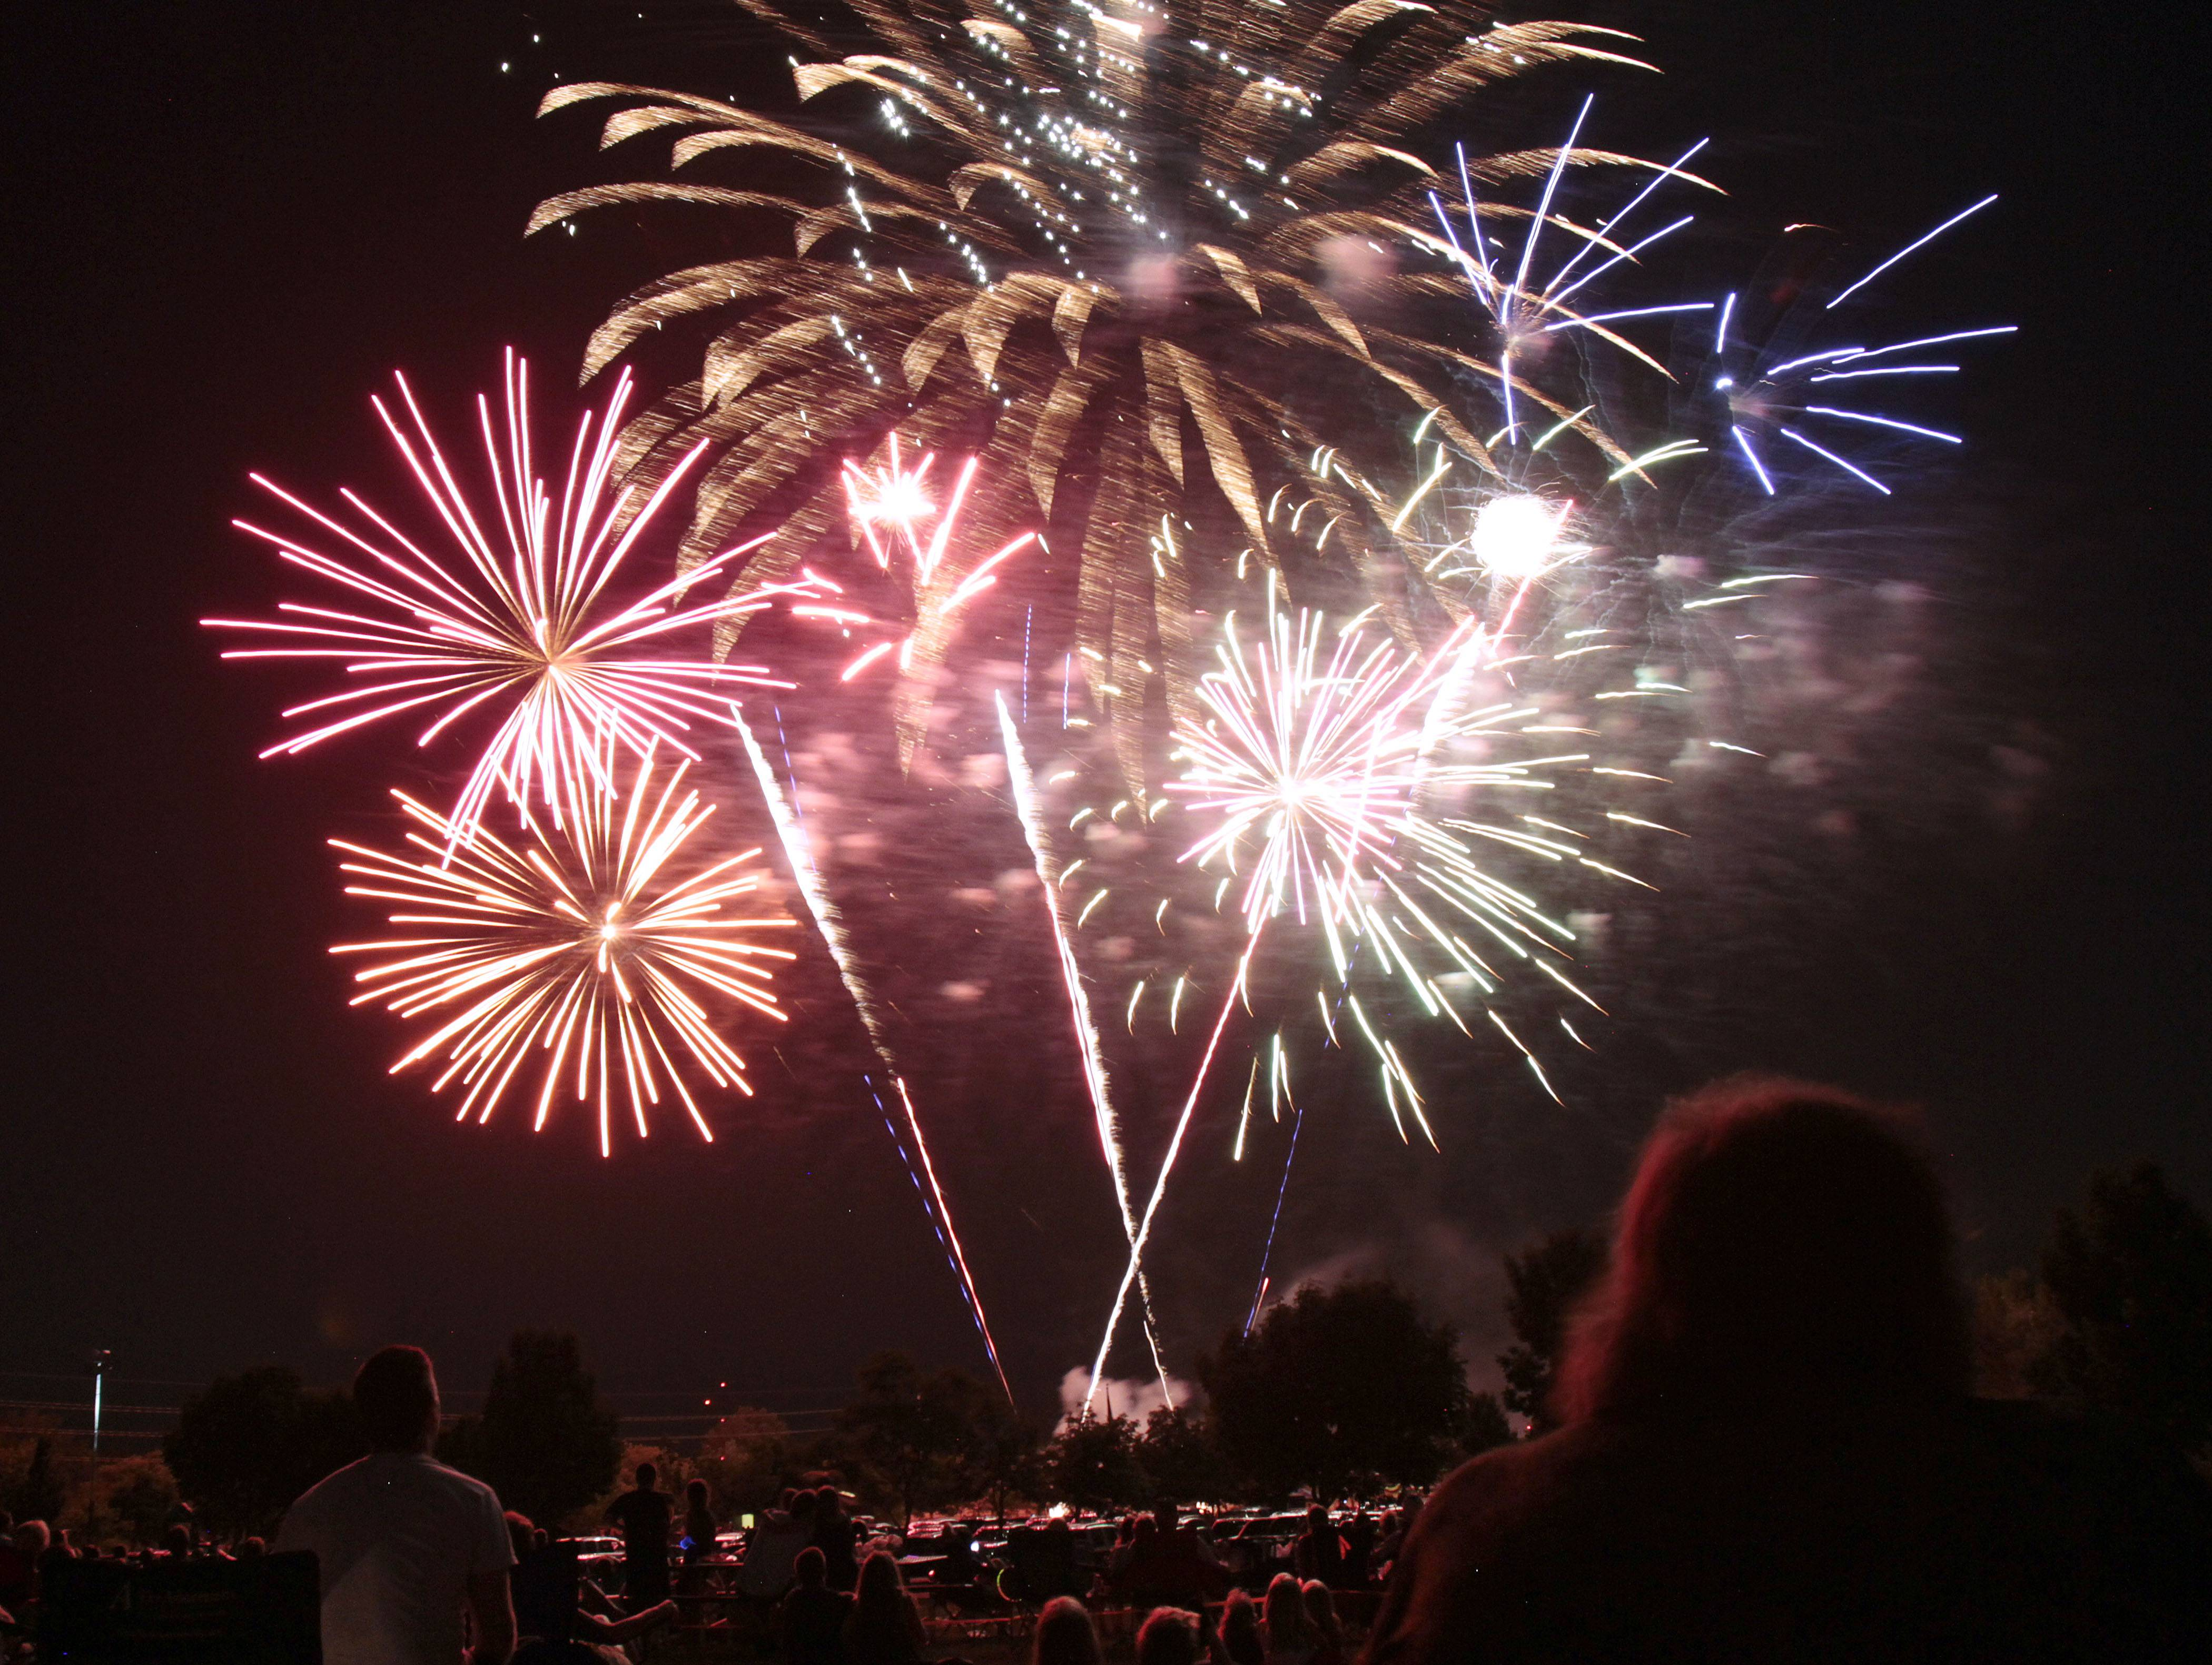 Several Fox Valley communities will host fireworks displays on Monday, July 4.